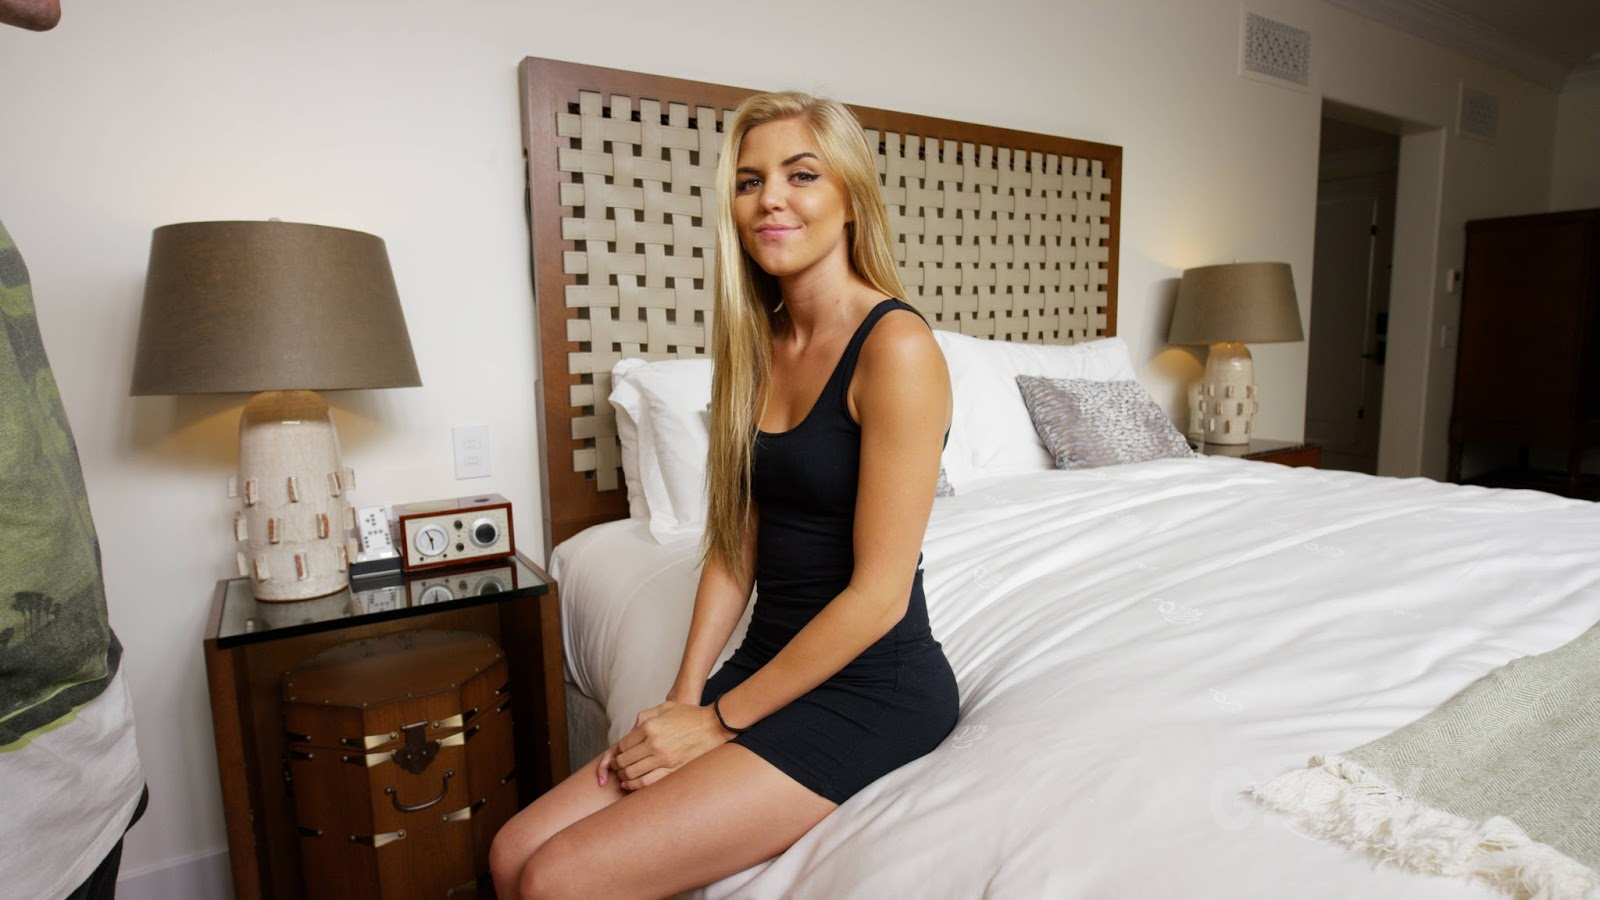 Simple-Text-Messages Blonde In Black Dress 85 Pics 53 Mb -7391